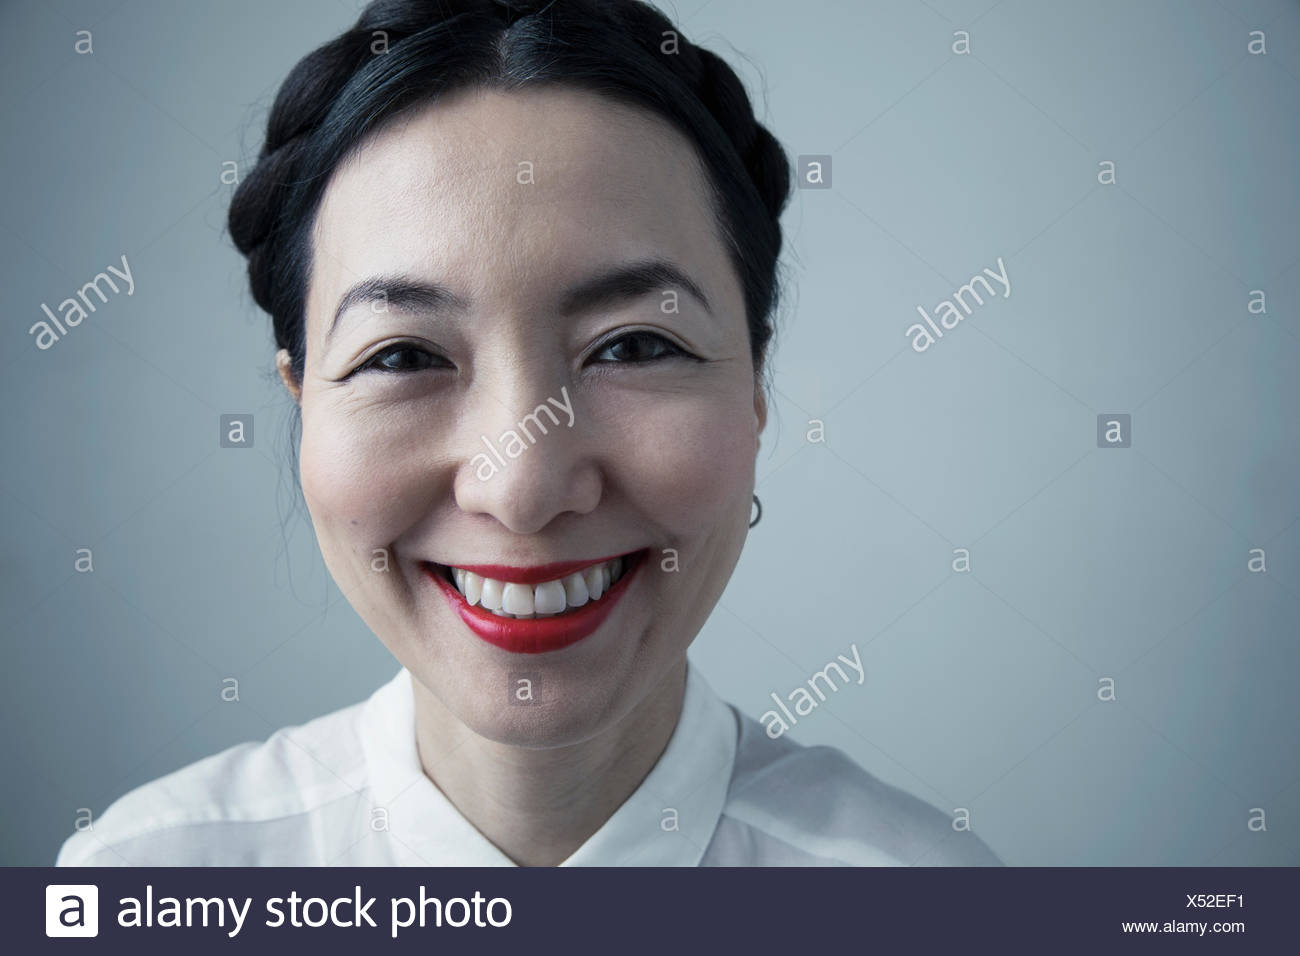 close up portrait happy asian mature woman with braided black hair